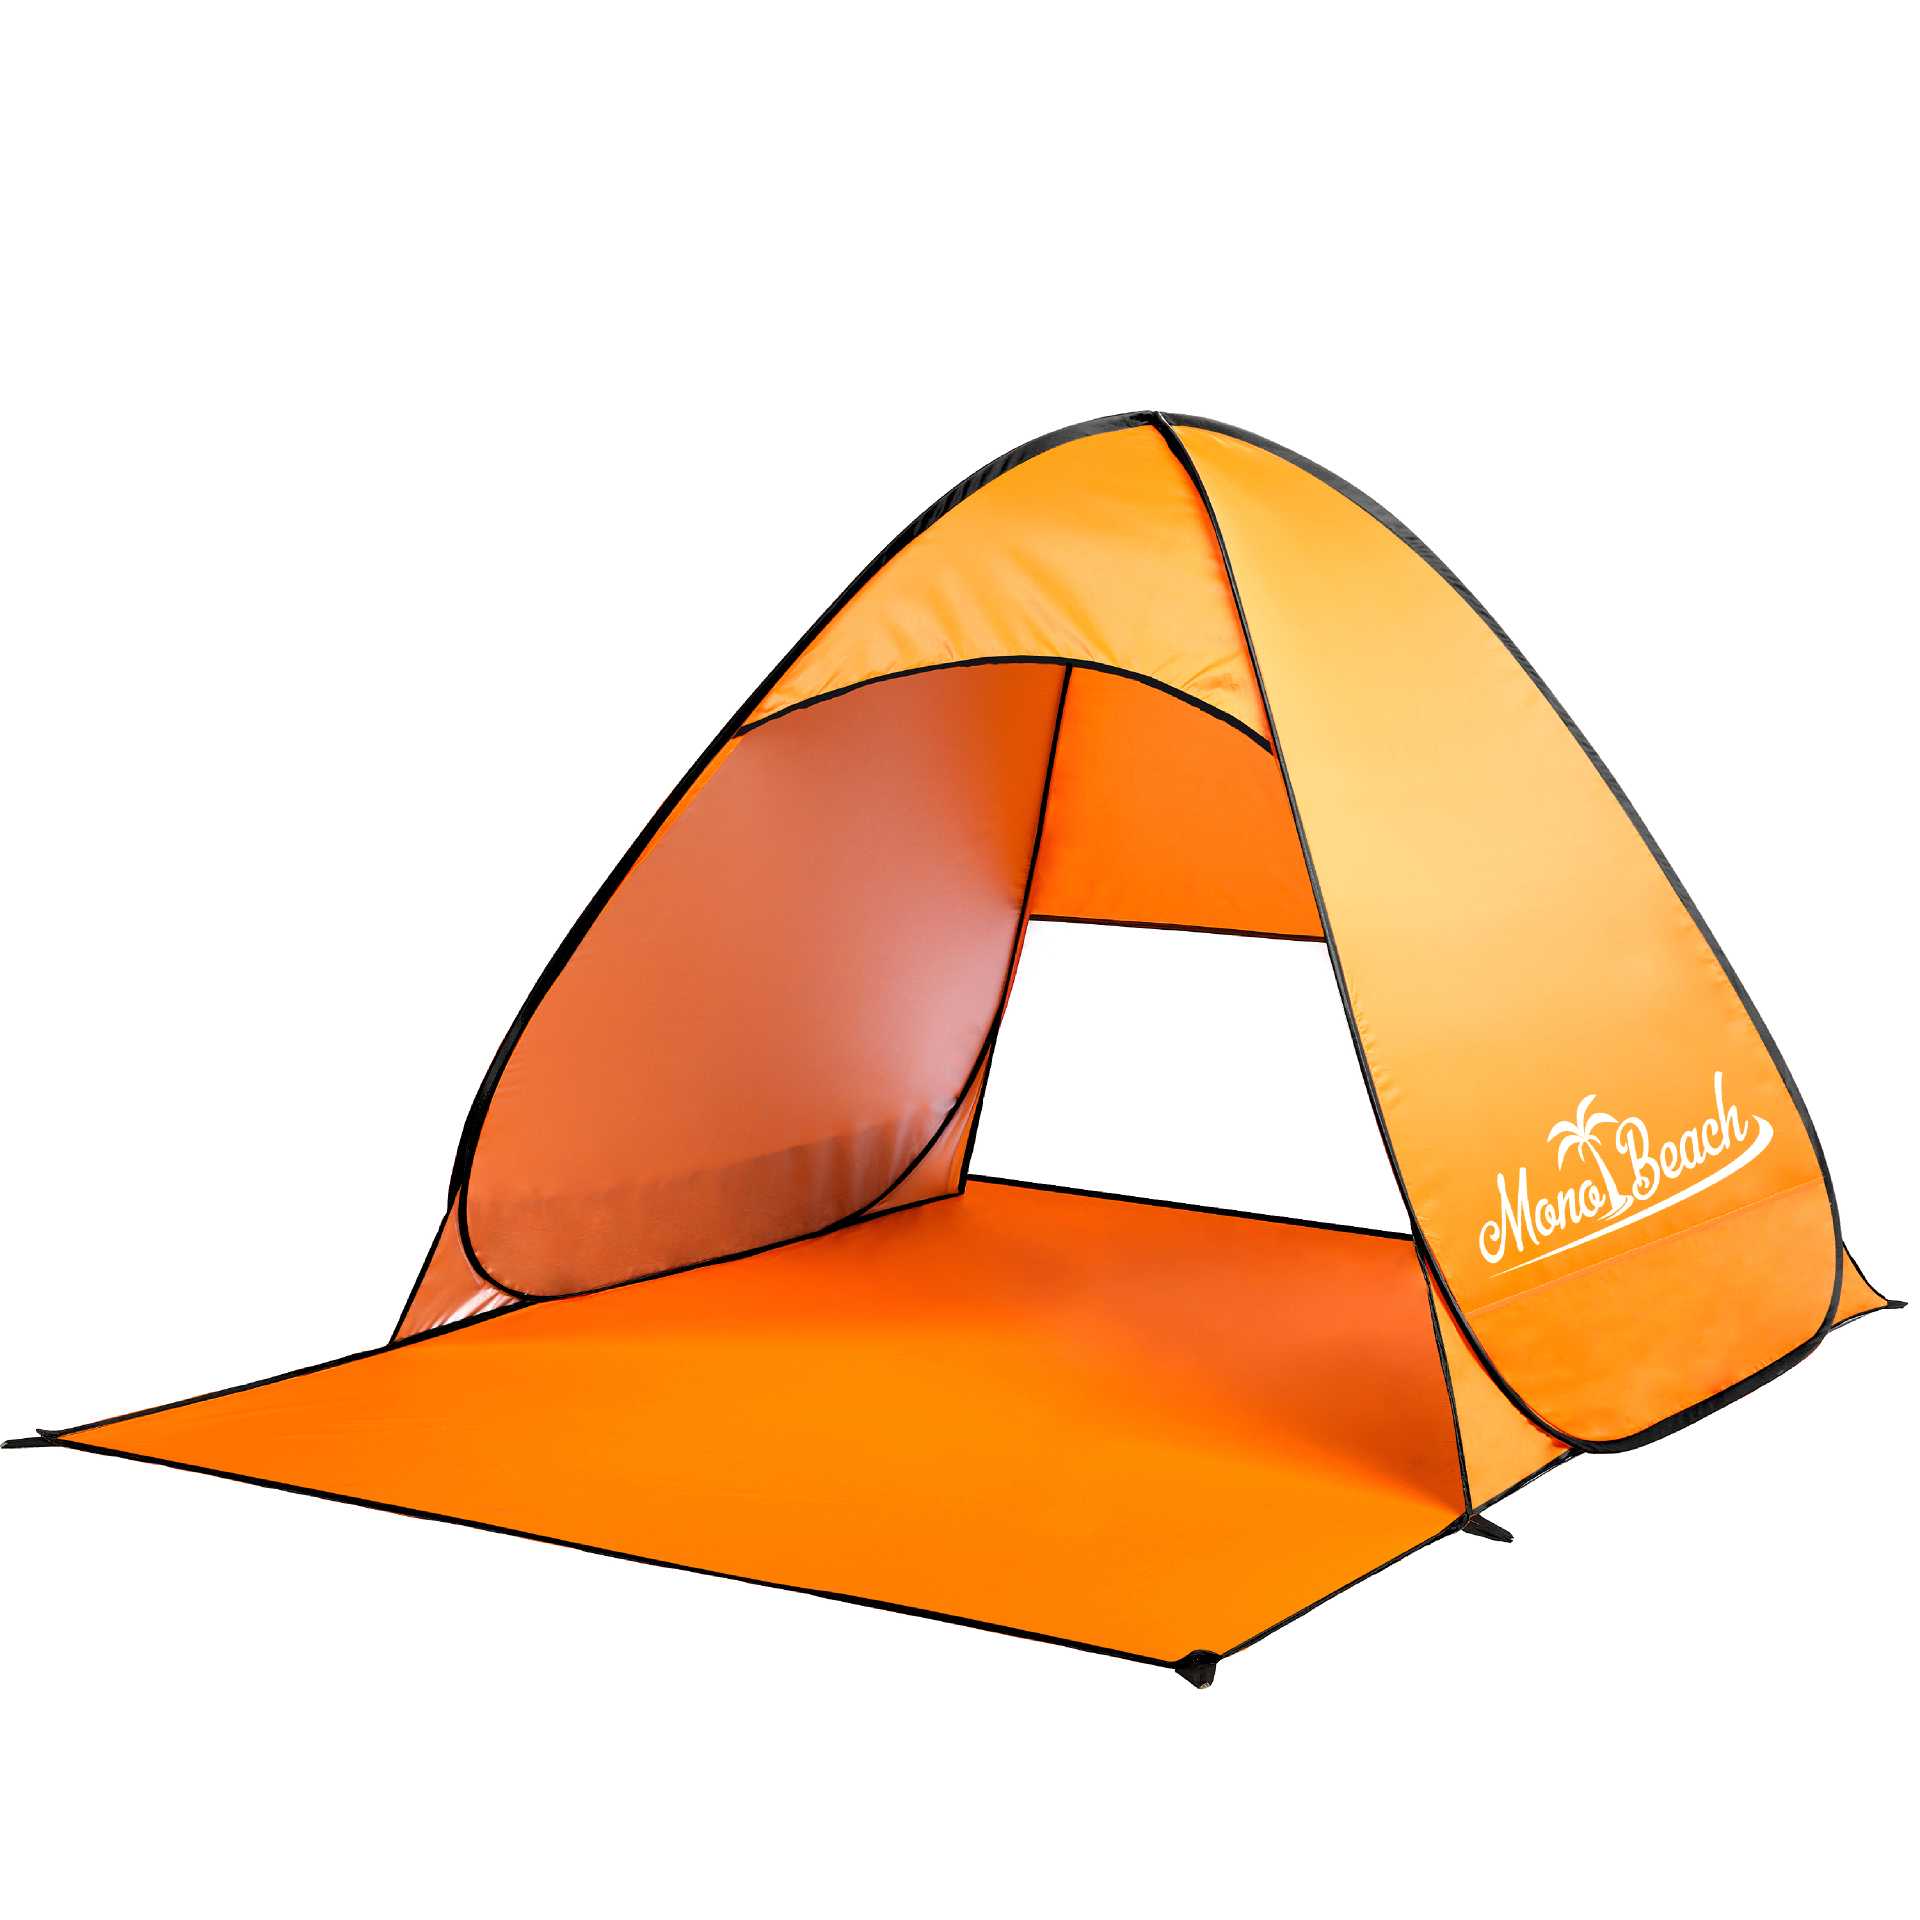 ... MonoBeach TM Baby Beach Tent Sun Shelter Automatic Pop Up B ...  sc 1 st  Monobeach & MonoBeach TM Baby Beach Tent Sun Shelter Automatic Pop Up Beach ...